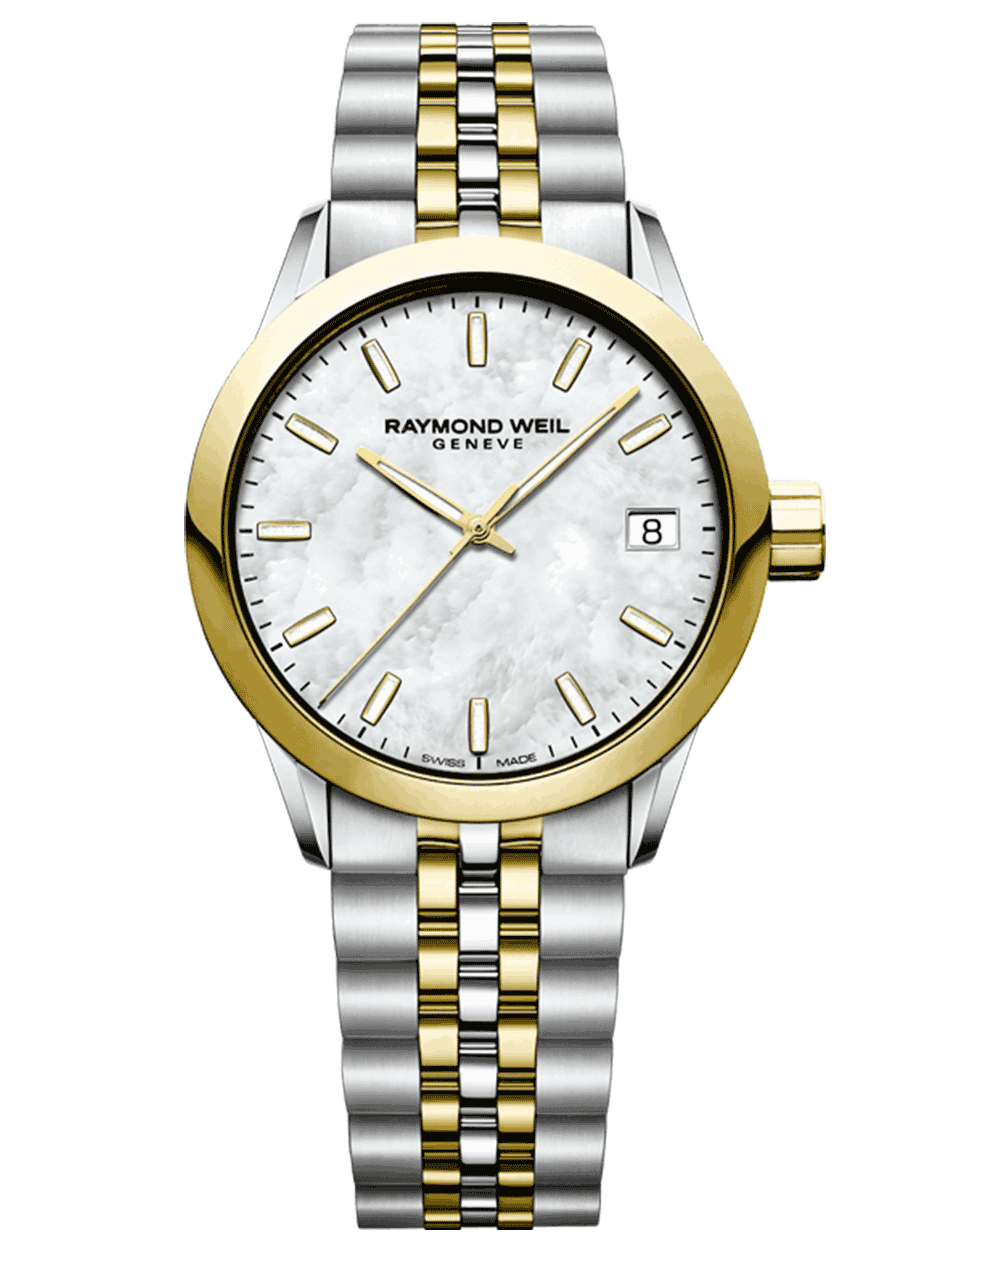 RAYMOND WEIL Geneve Mother of Pearl Dial Two-tone Ladies Luxury Watch